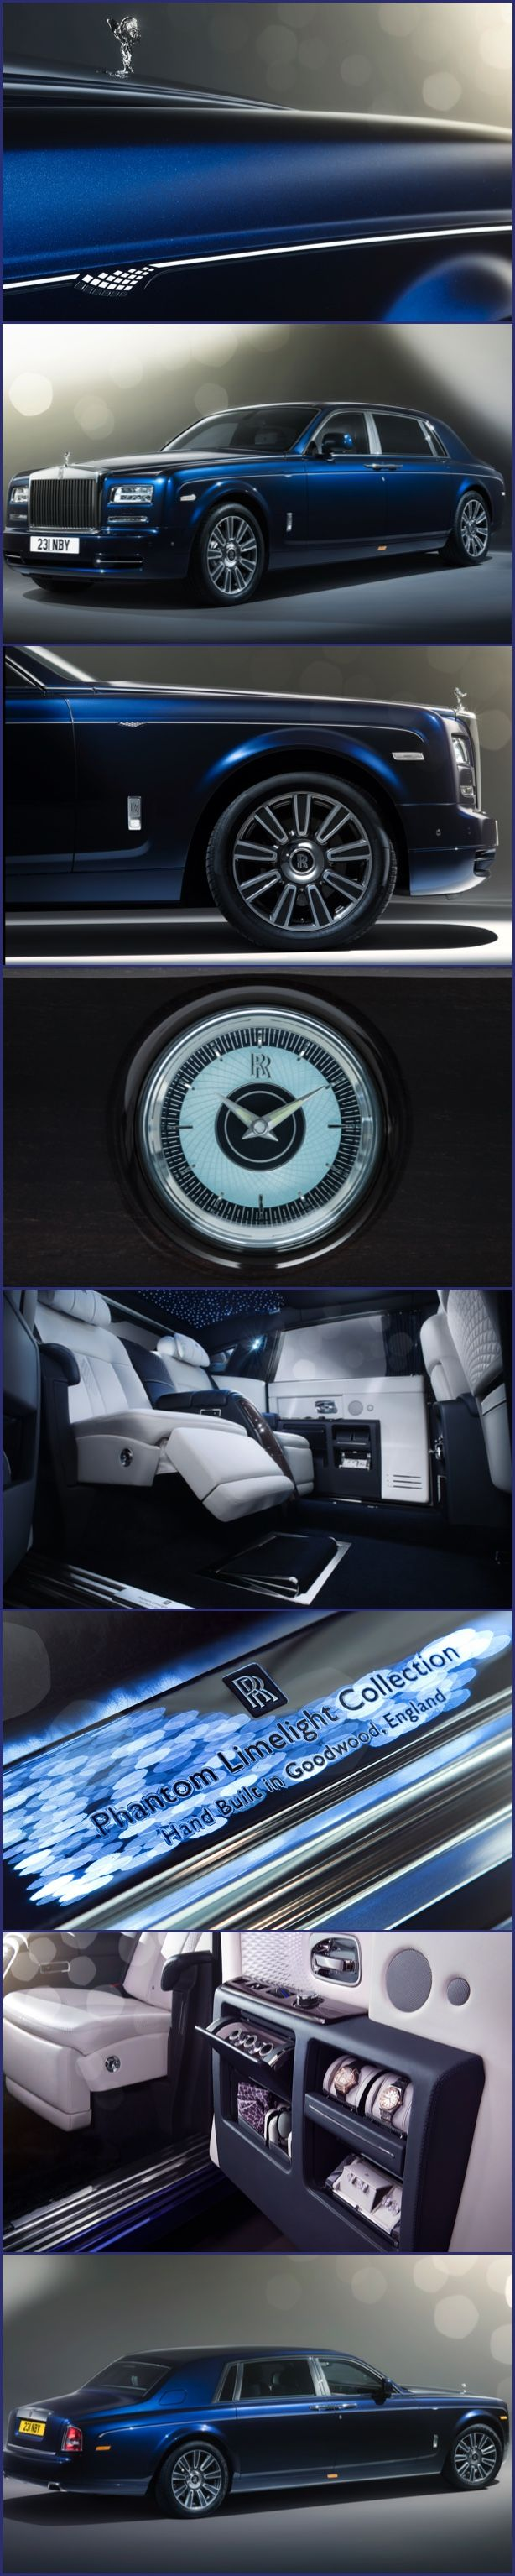 A New Approach to Luxury – Phantom Limelight - Prepare, Relax, Arrive #RollsRoyce #Luxury #Lifestyle